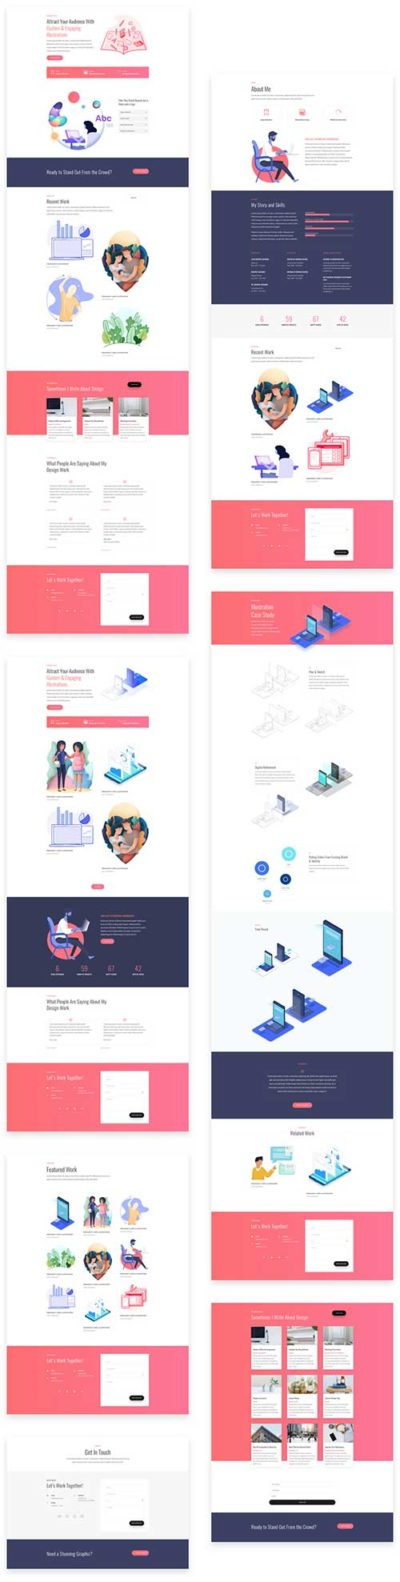 divi layout pack for graphic designer